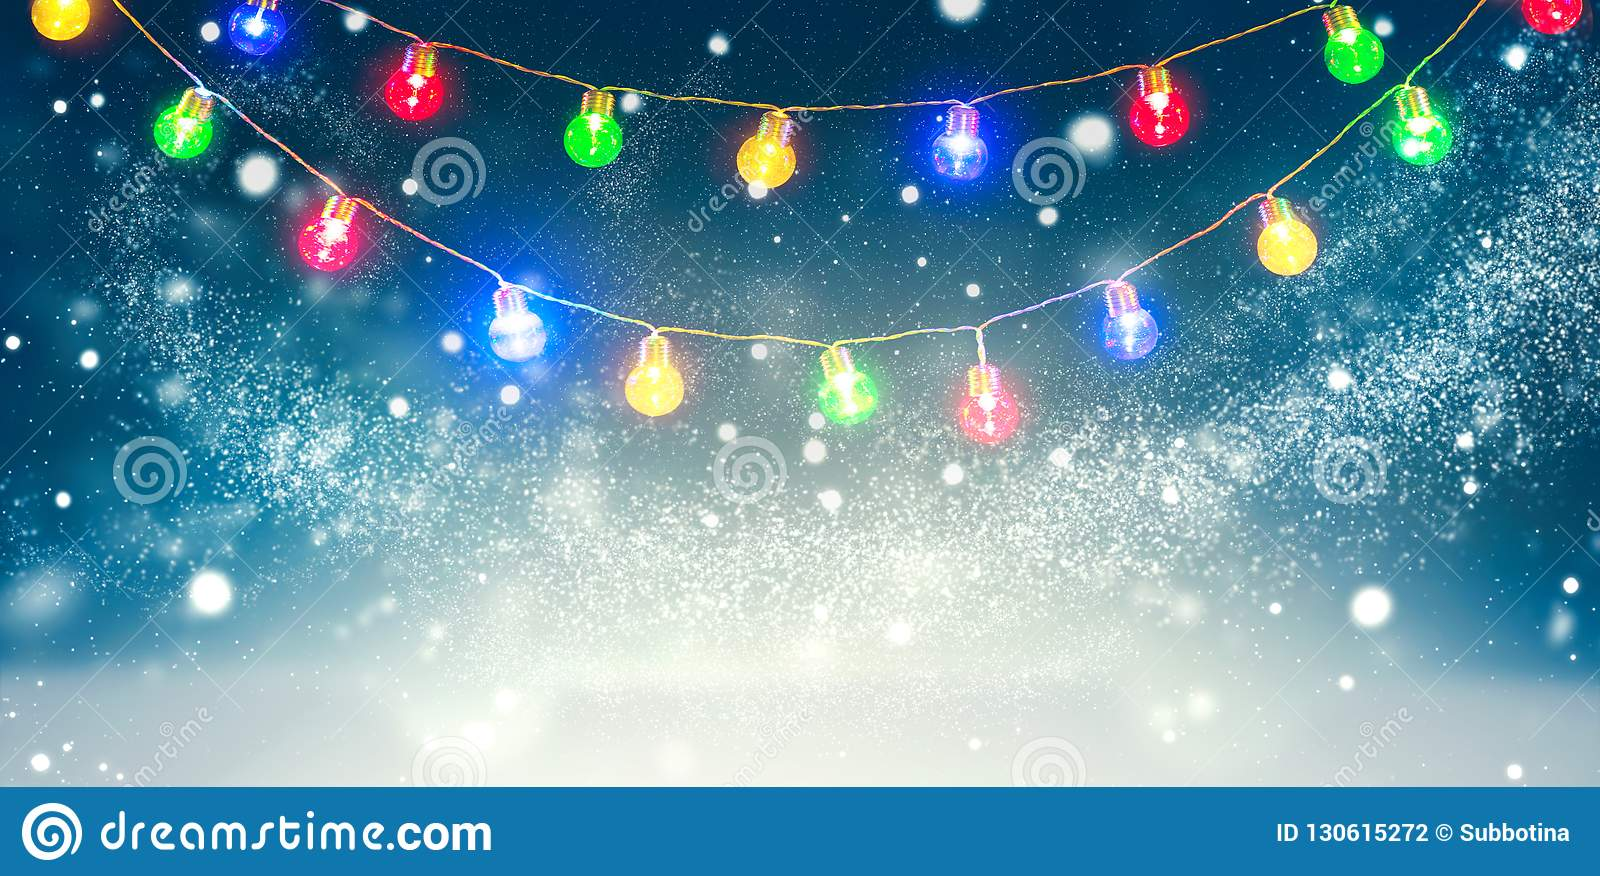 Winter holiday snow background decorated with colorful light bulbs garland. Snowflakes. Christmas and New Year abstract backdrop